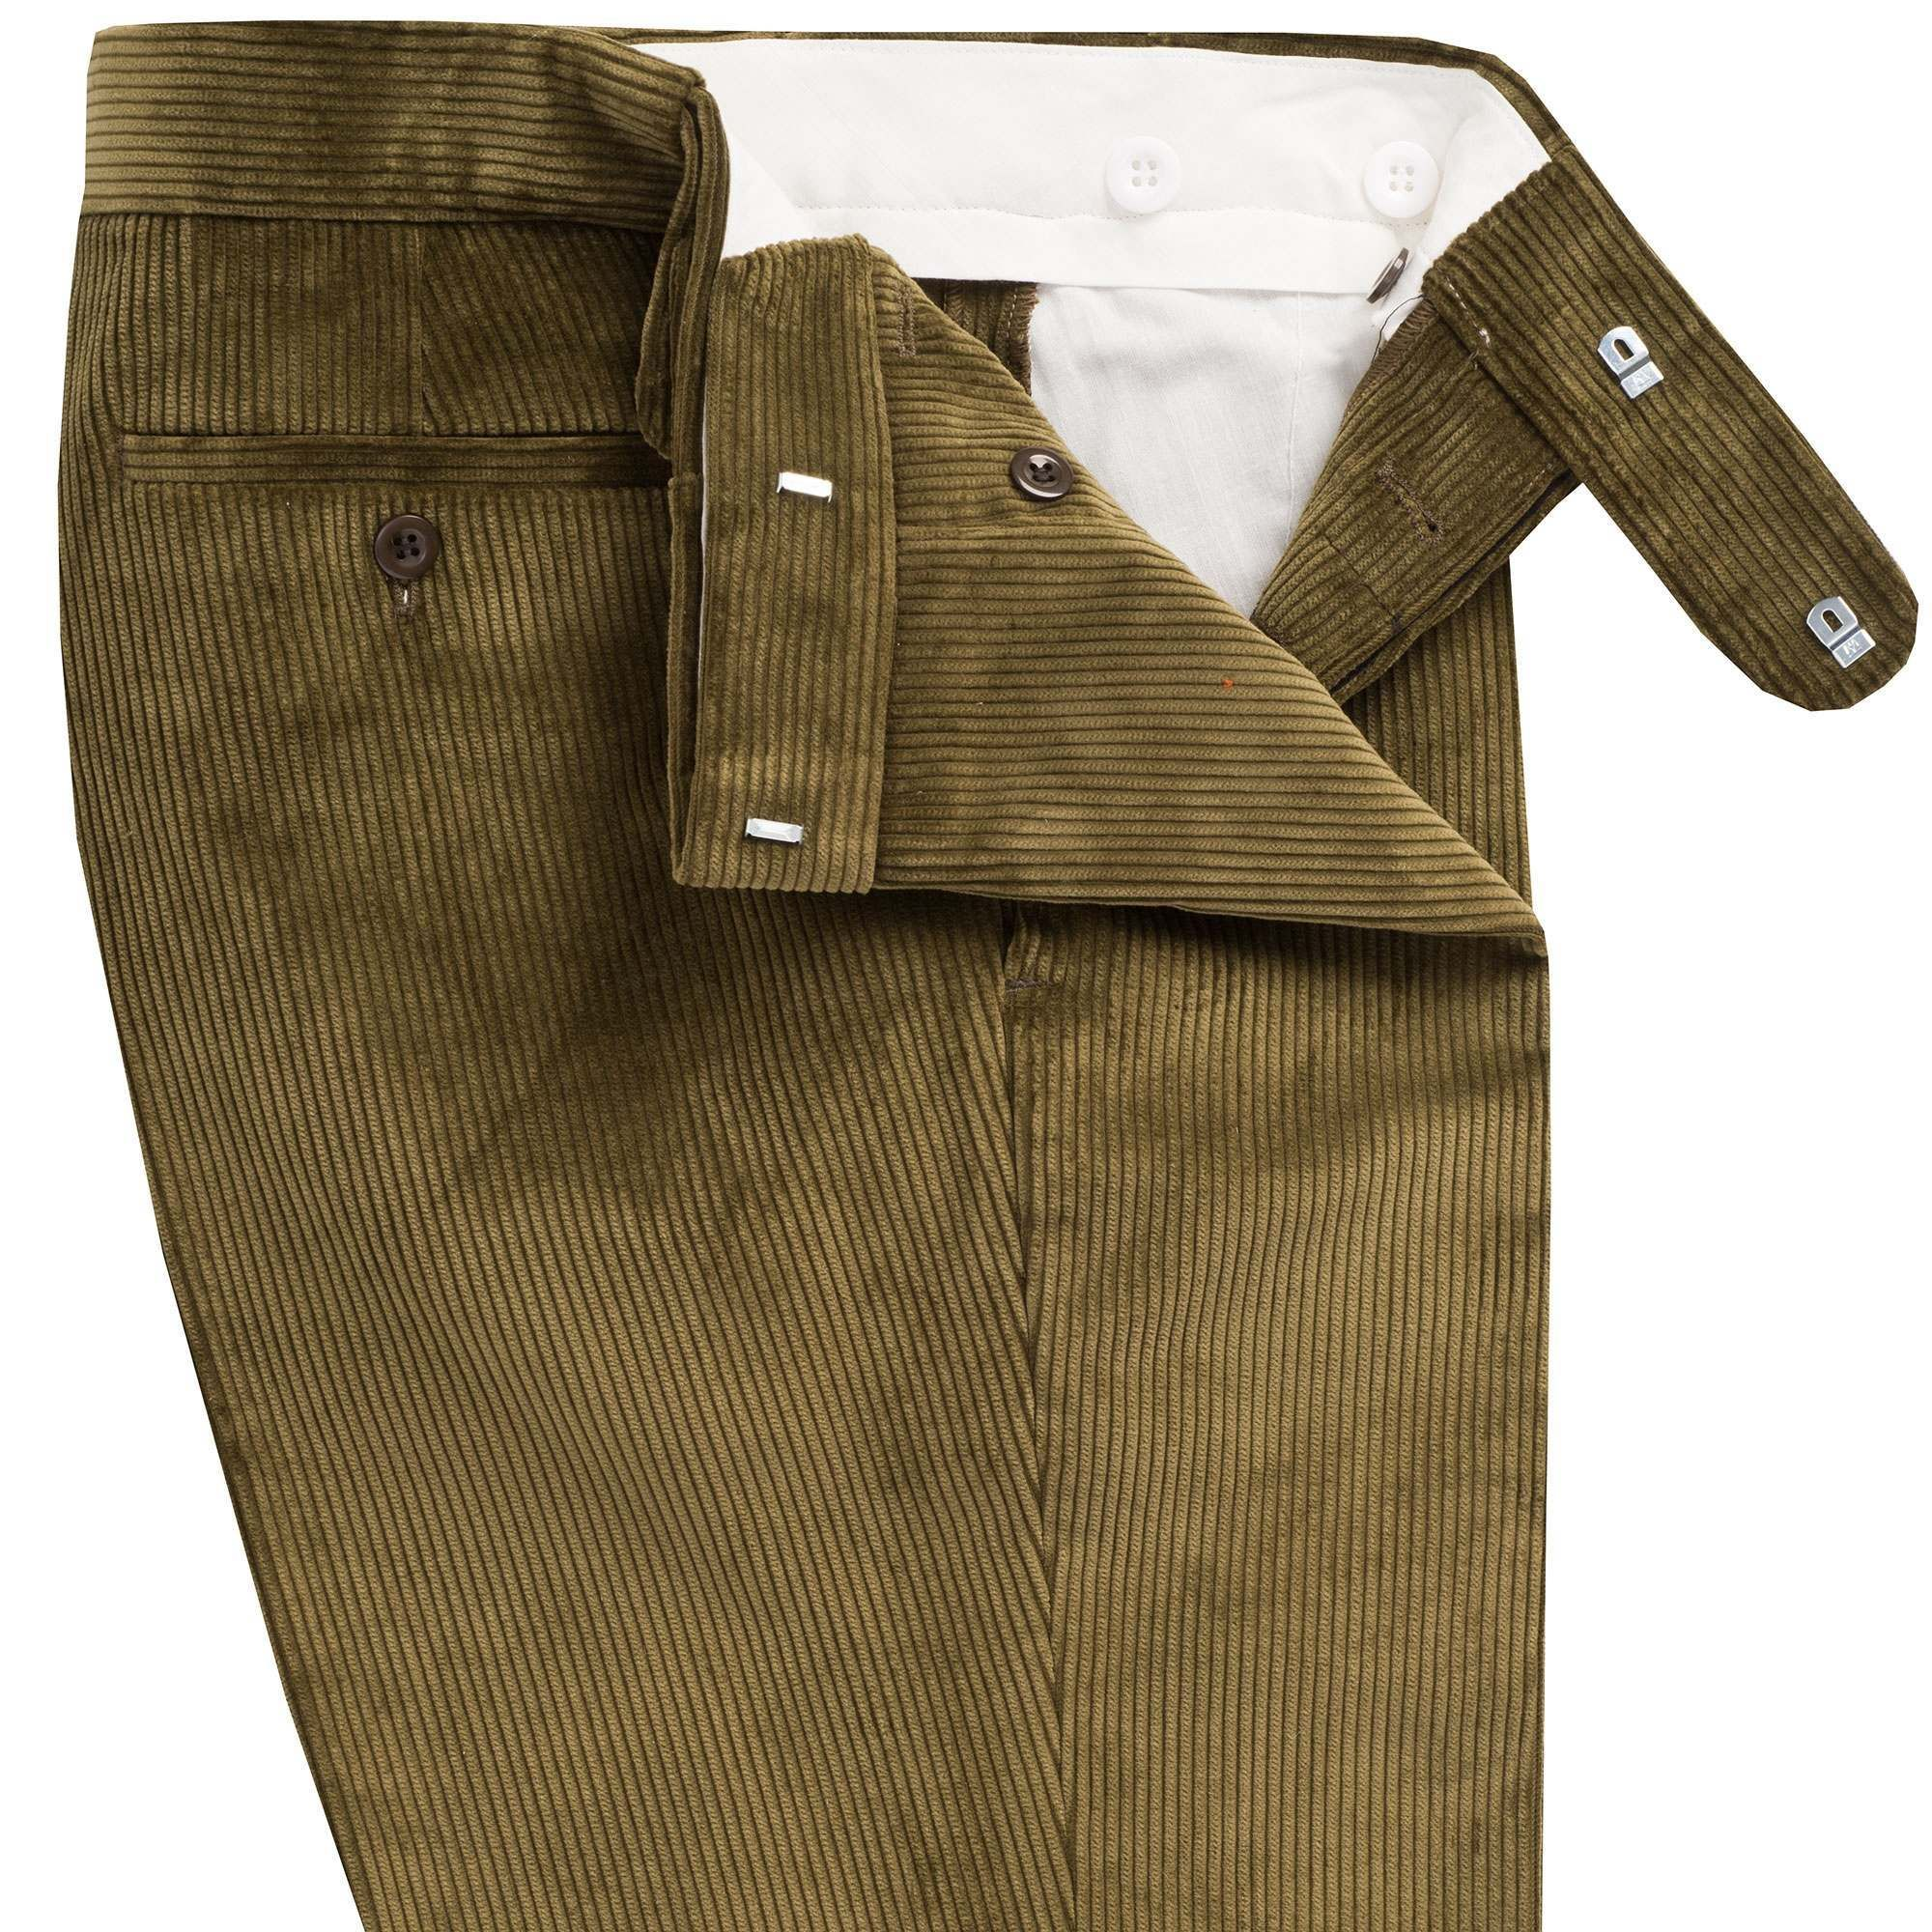 Moss Green Corduroy Trousers | Men's Country Clothing | Cordings